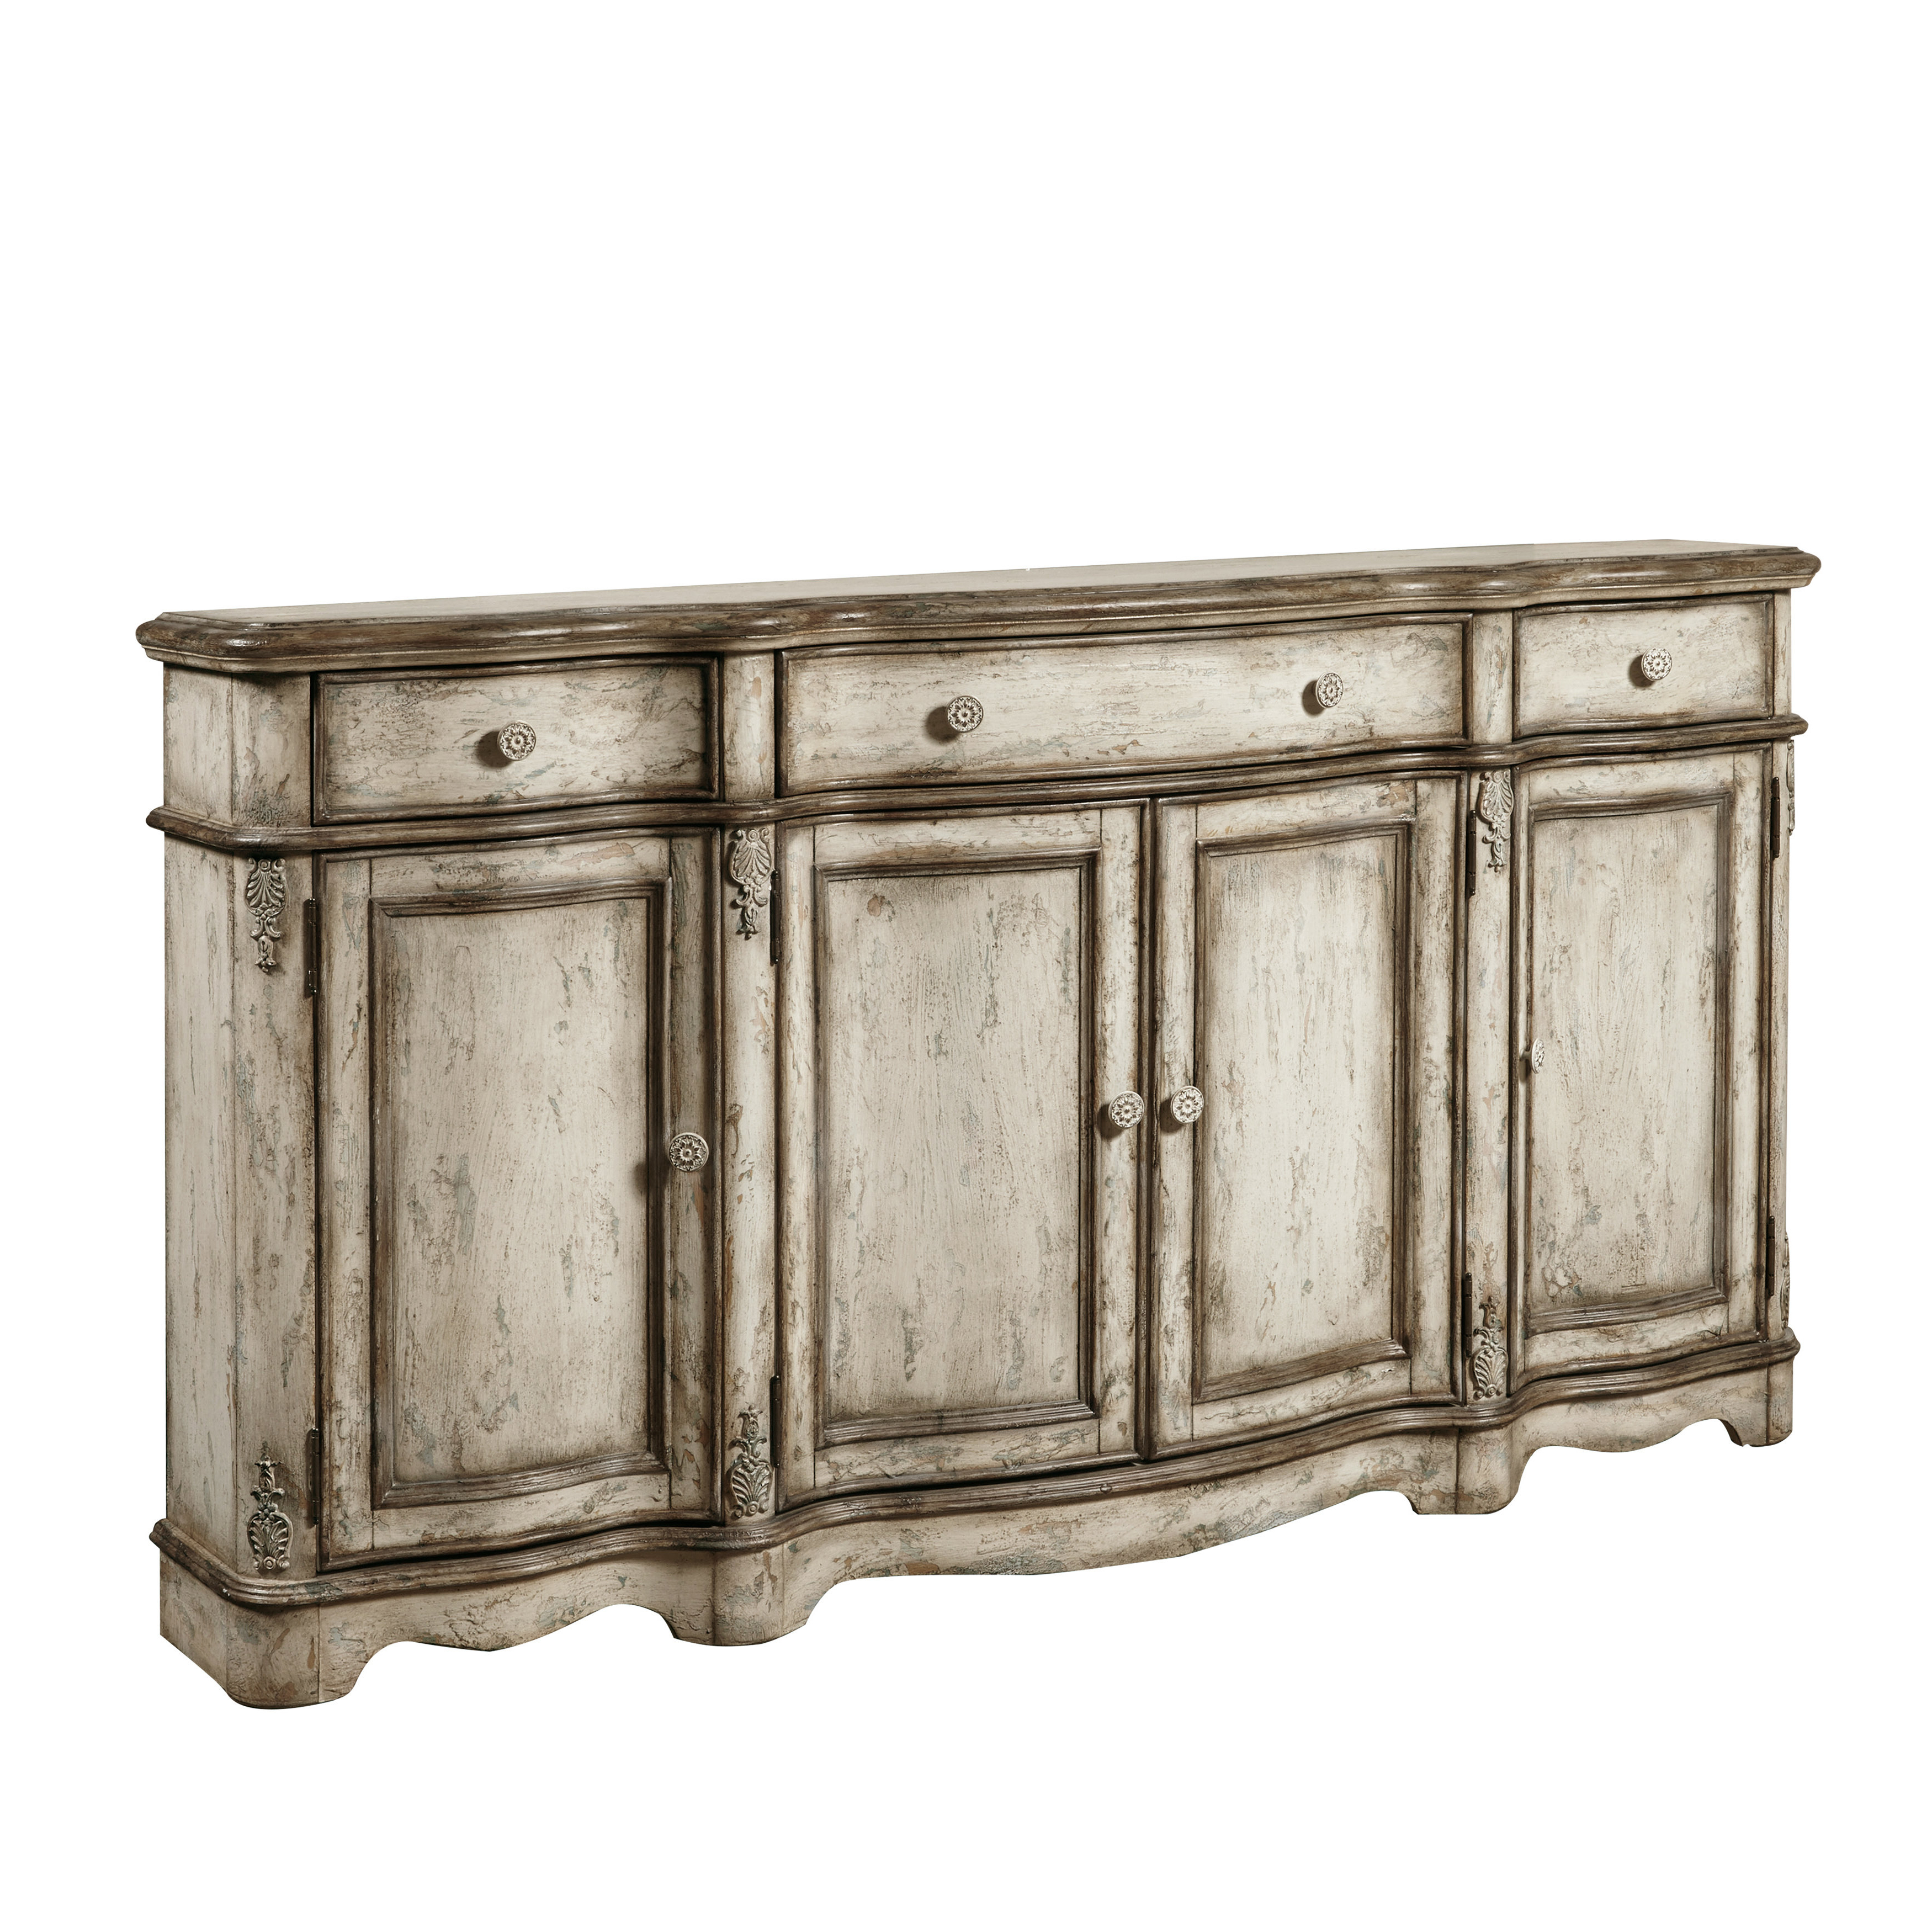 Seiling Sideboards Regarding Popular Farmhouse & Rustic Distressed Finish Sideboards & Buffets (View 15 of 20)